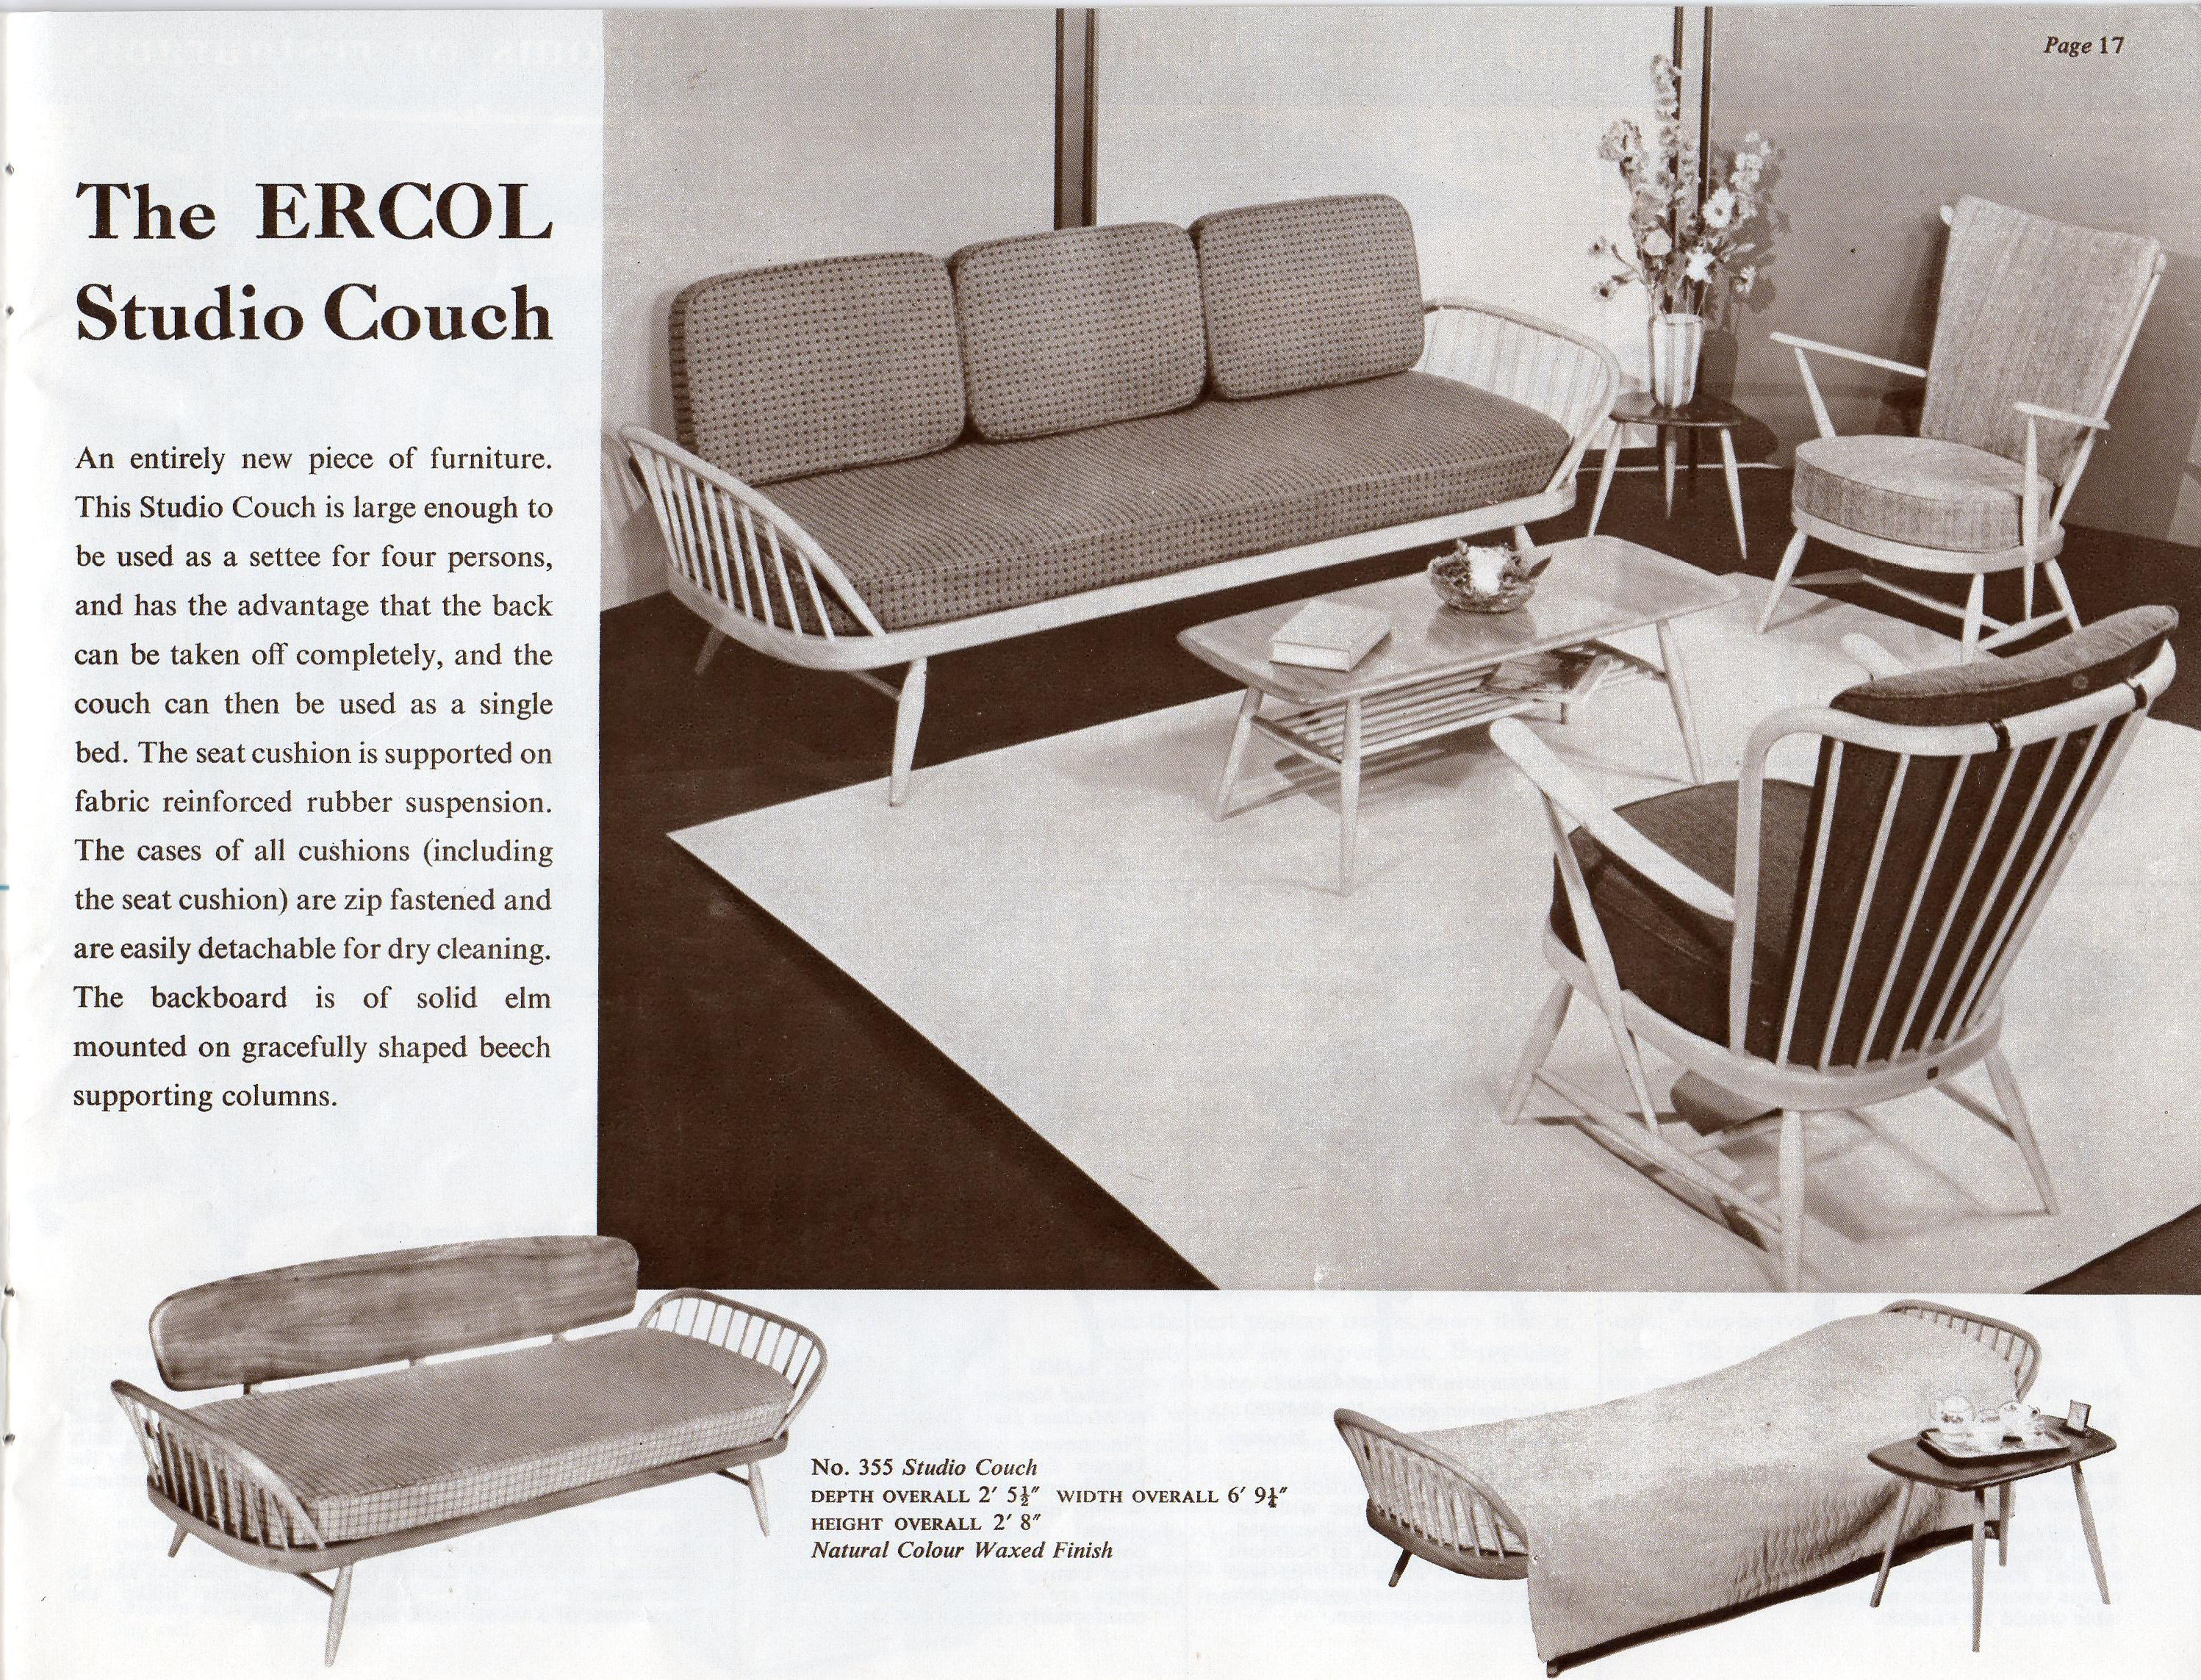 1959 Ercol Catalogue Featuring The Ercol Studio Couch, Evergreen Chair And  1459 Coffee Table